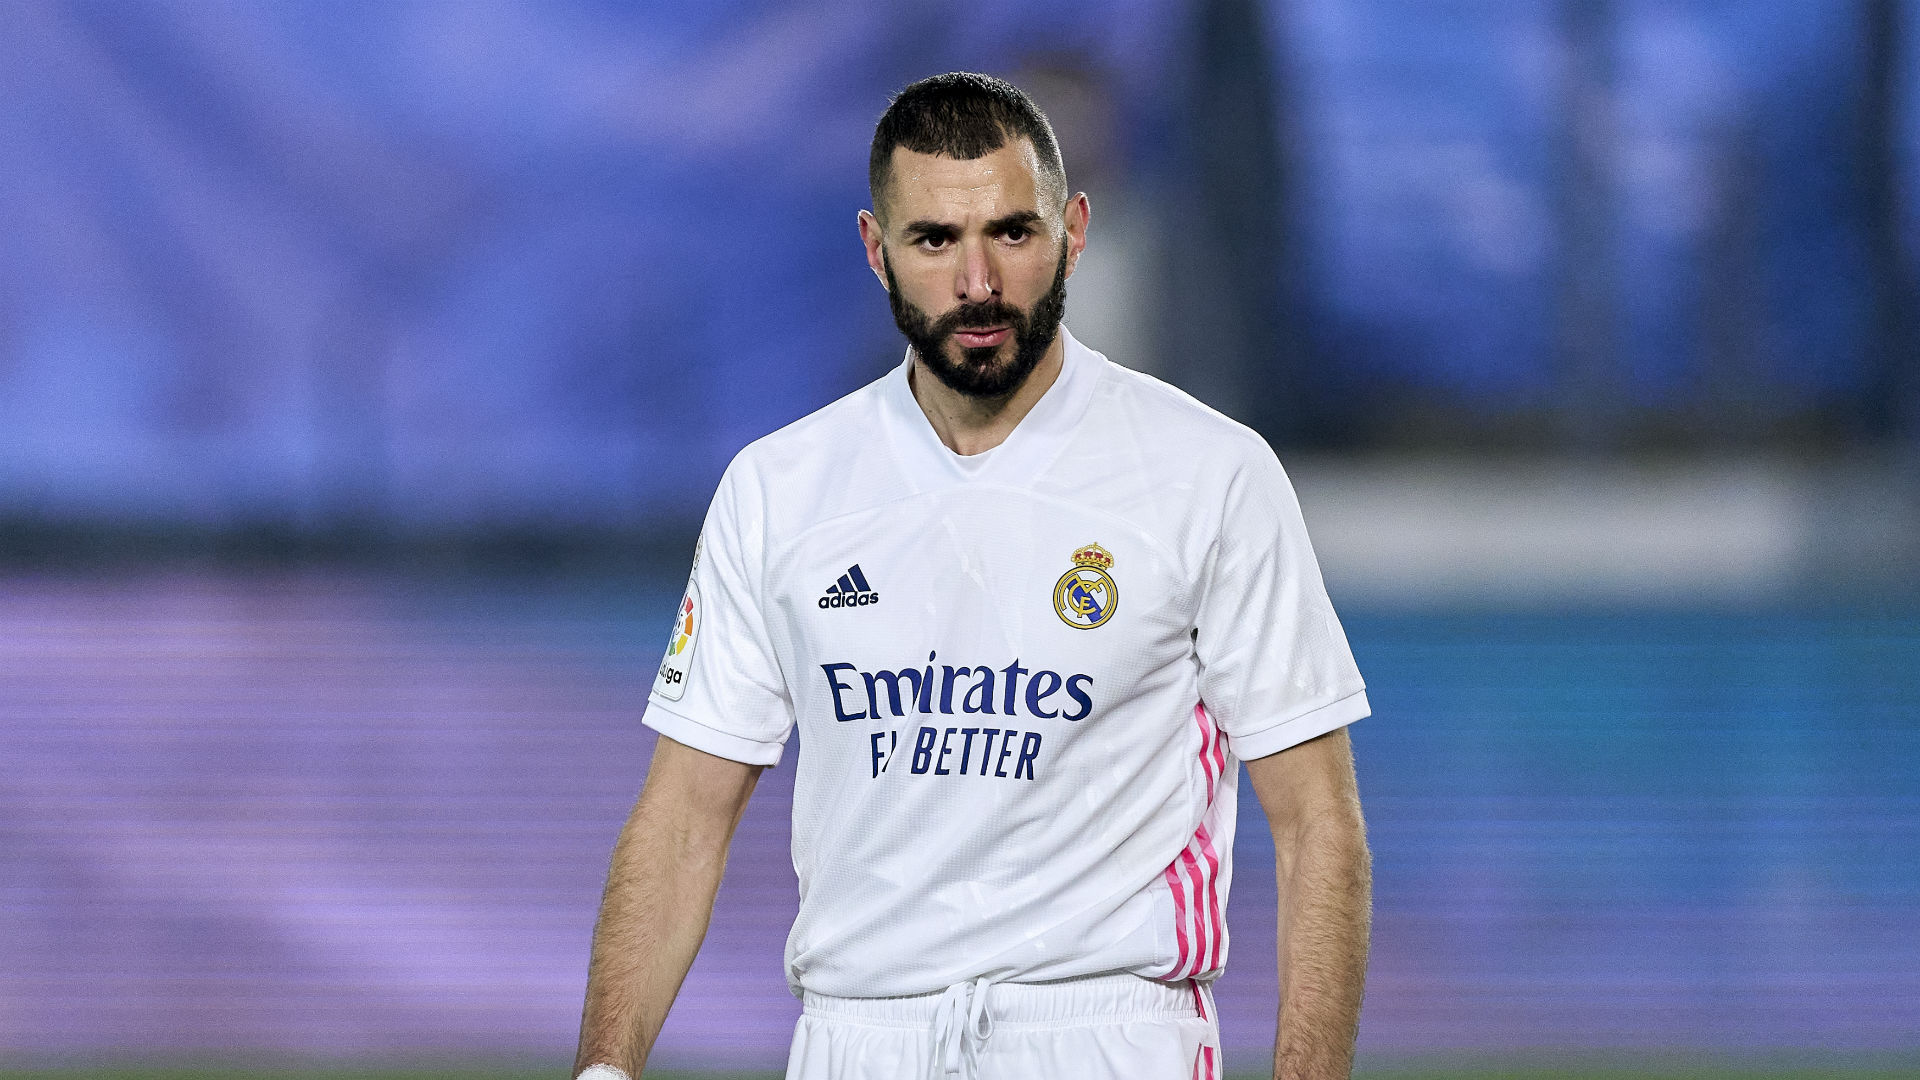 Zidane will not rest Benzema, Hazard to be eased back